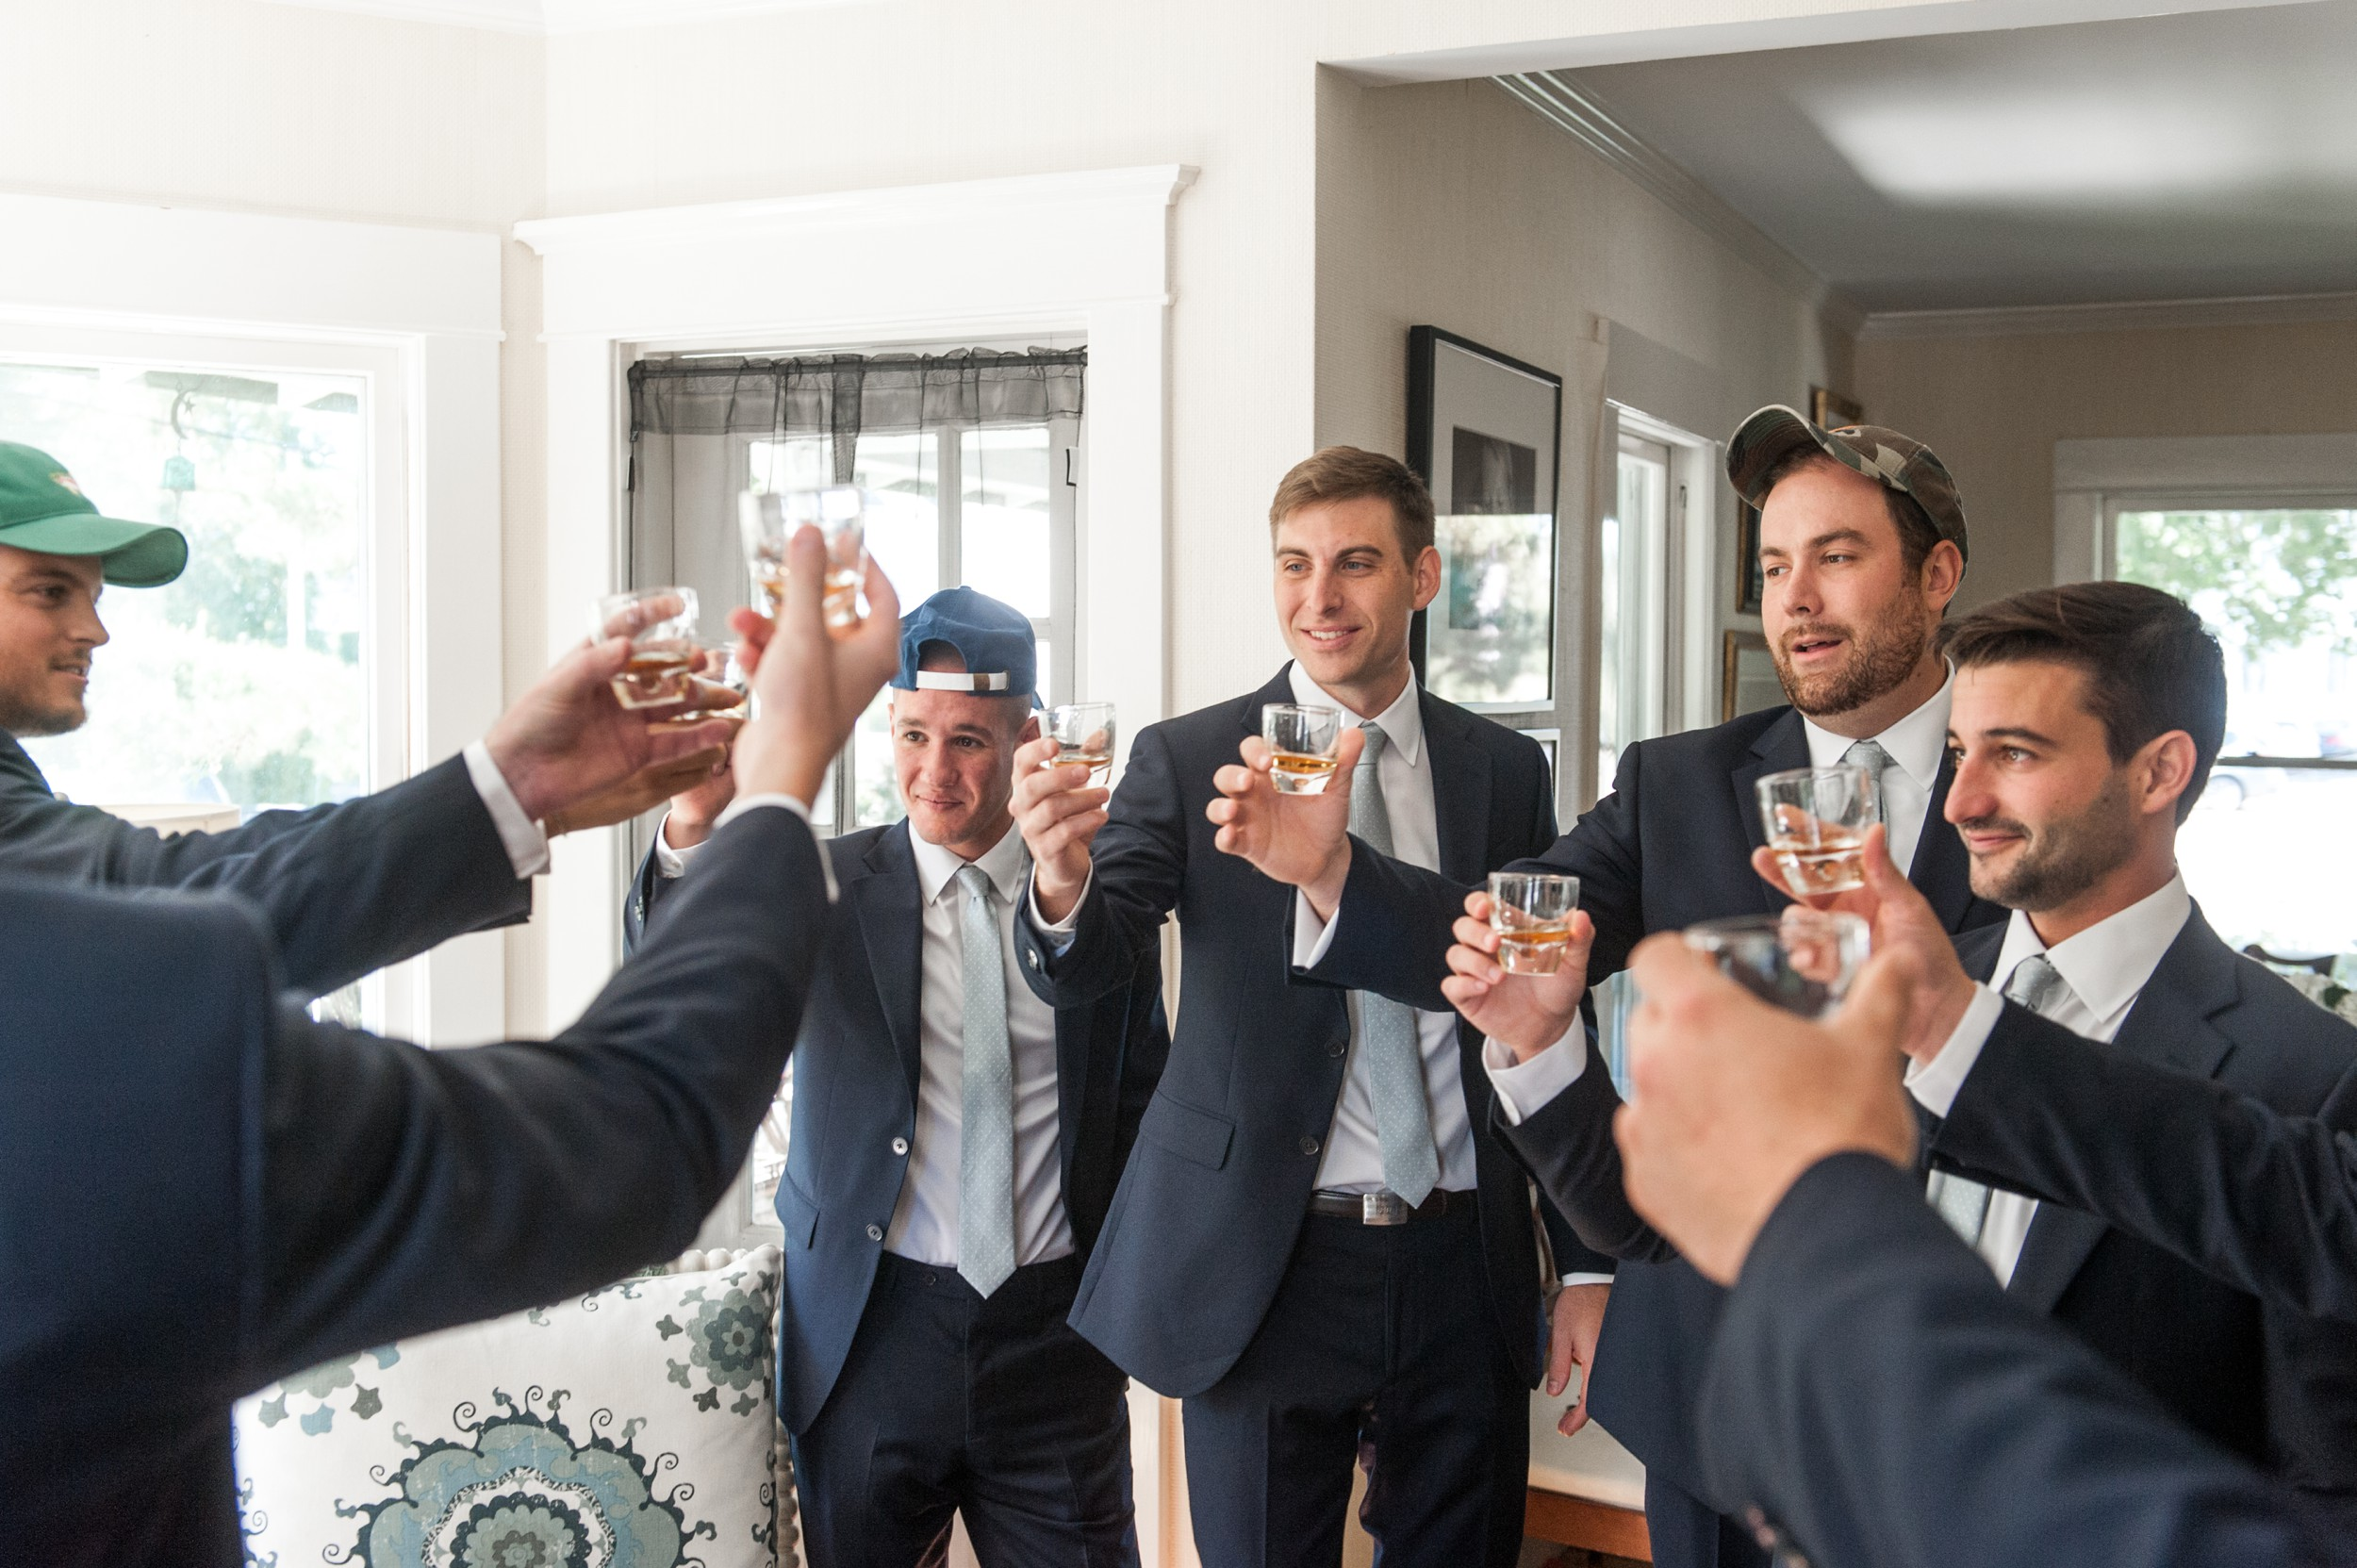 Wee Burn Beach Club Wedding Darien CT groom and groomsmen toasting during getting ready for fall wedding on shoreline in New England